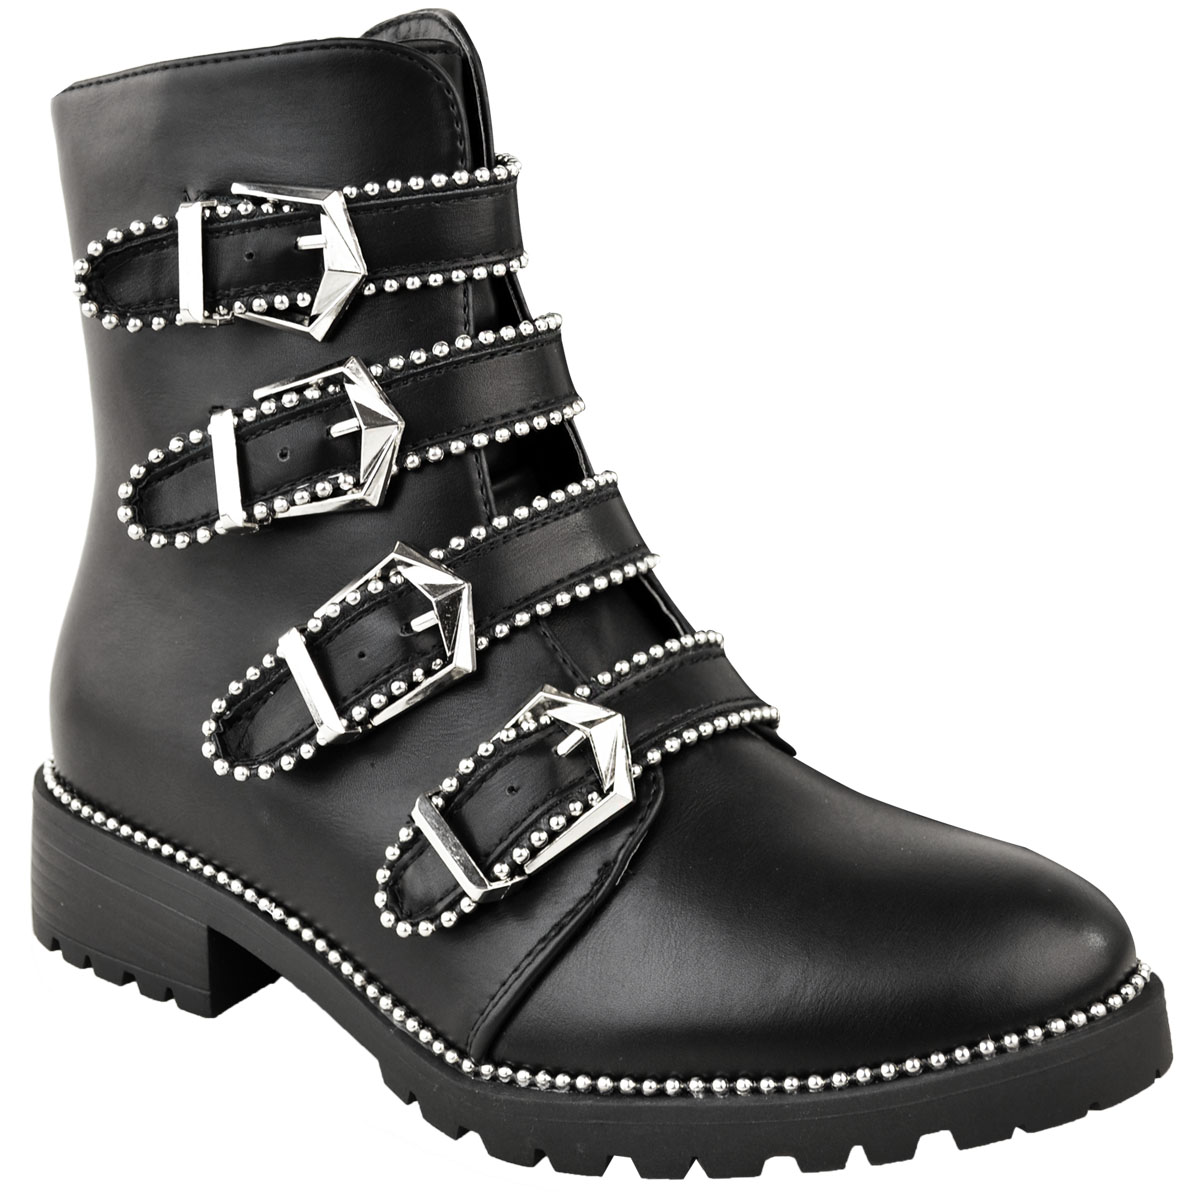 Black Ankle Silver New Heel Biker Low Pit St Punk Faux Flat Boots Womens Leather Buckles Studded X6wx6nRfOq